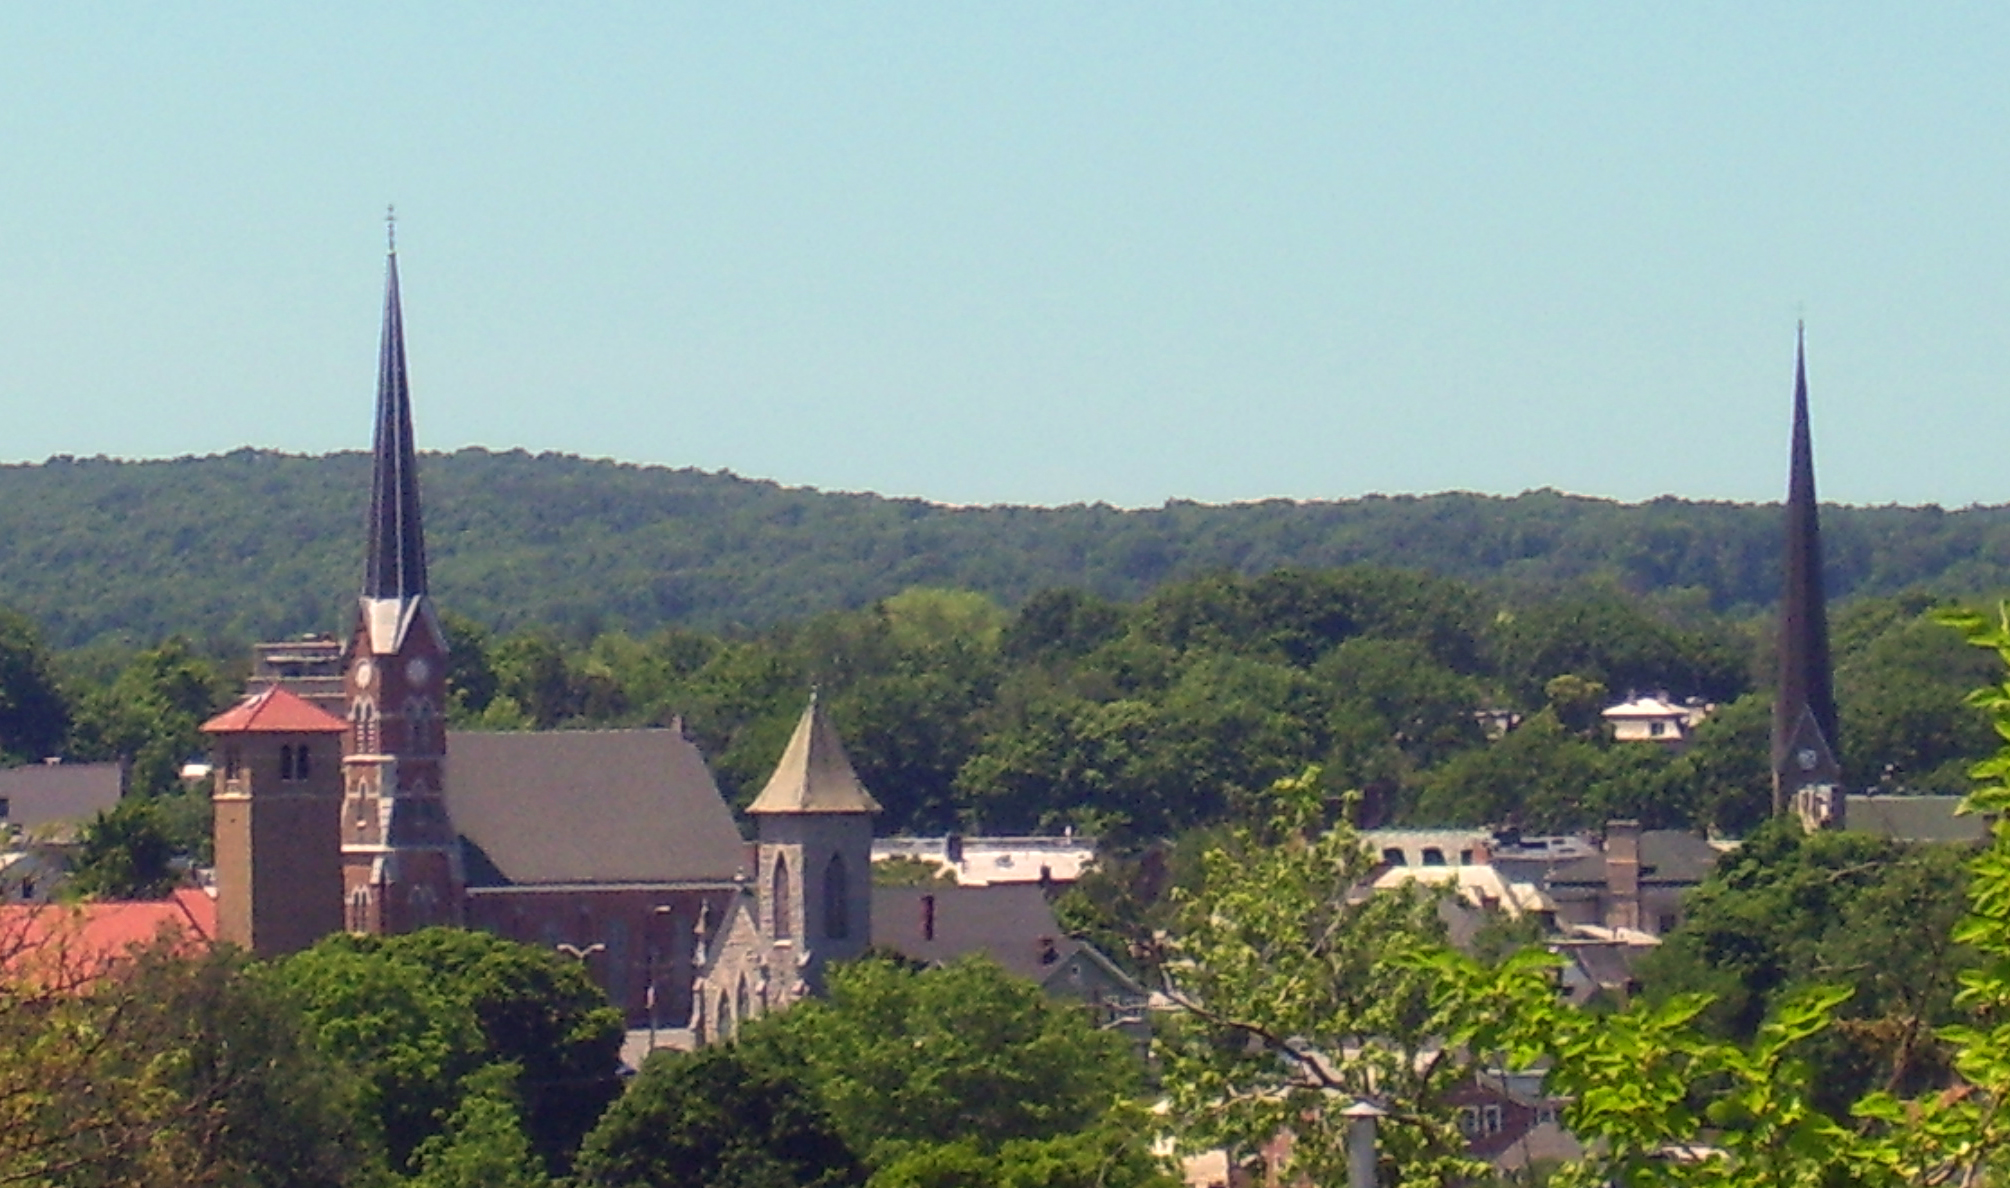 town of middletown ny